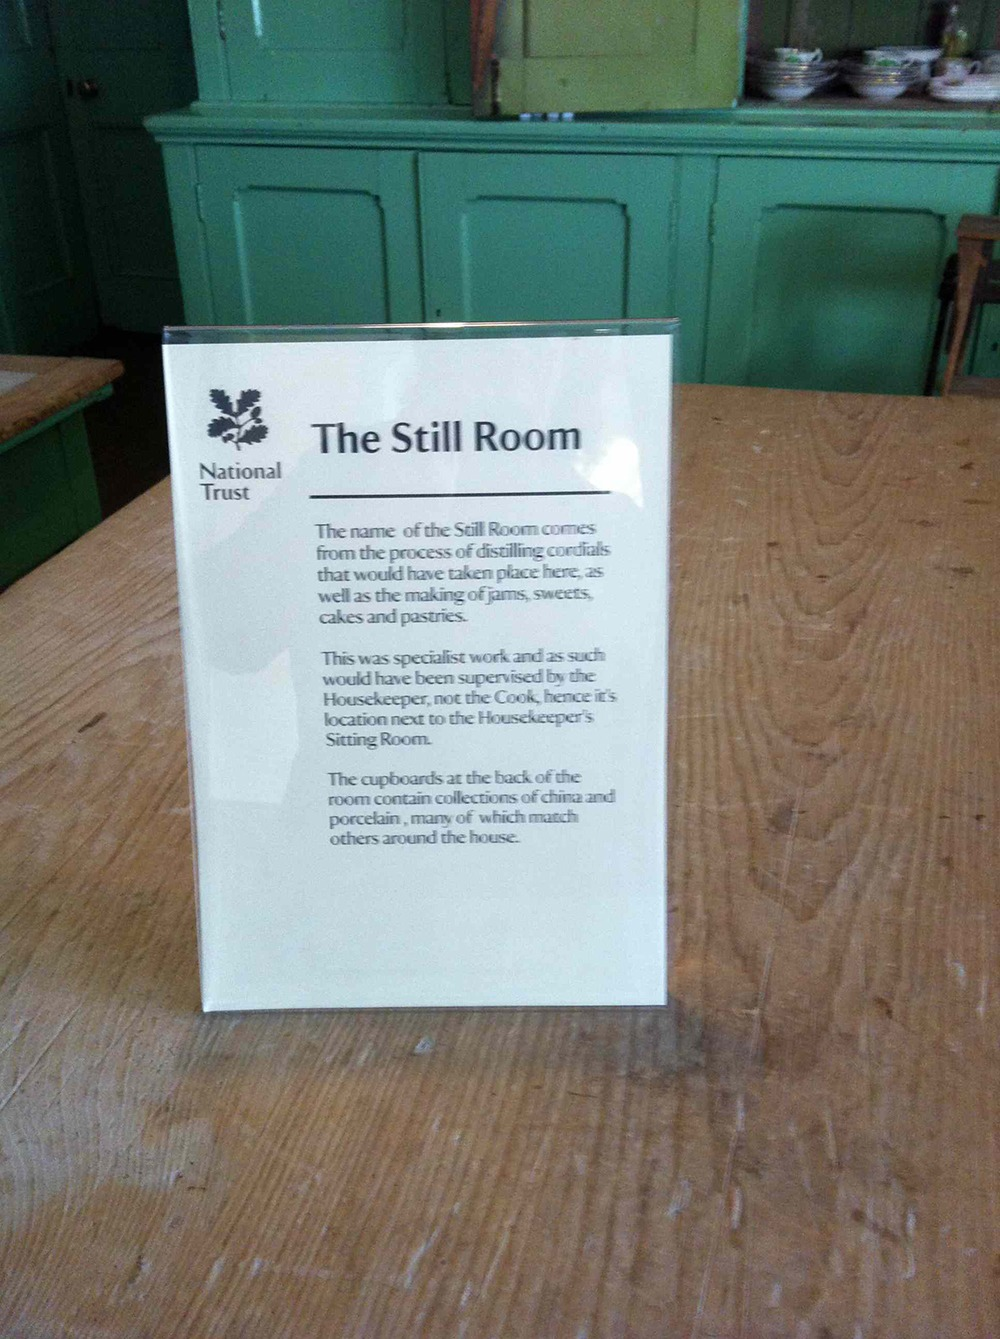 What is a still room?